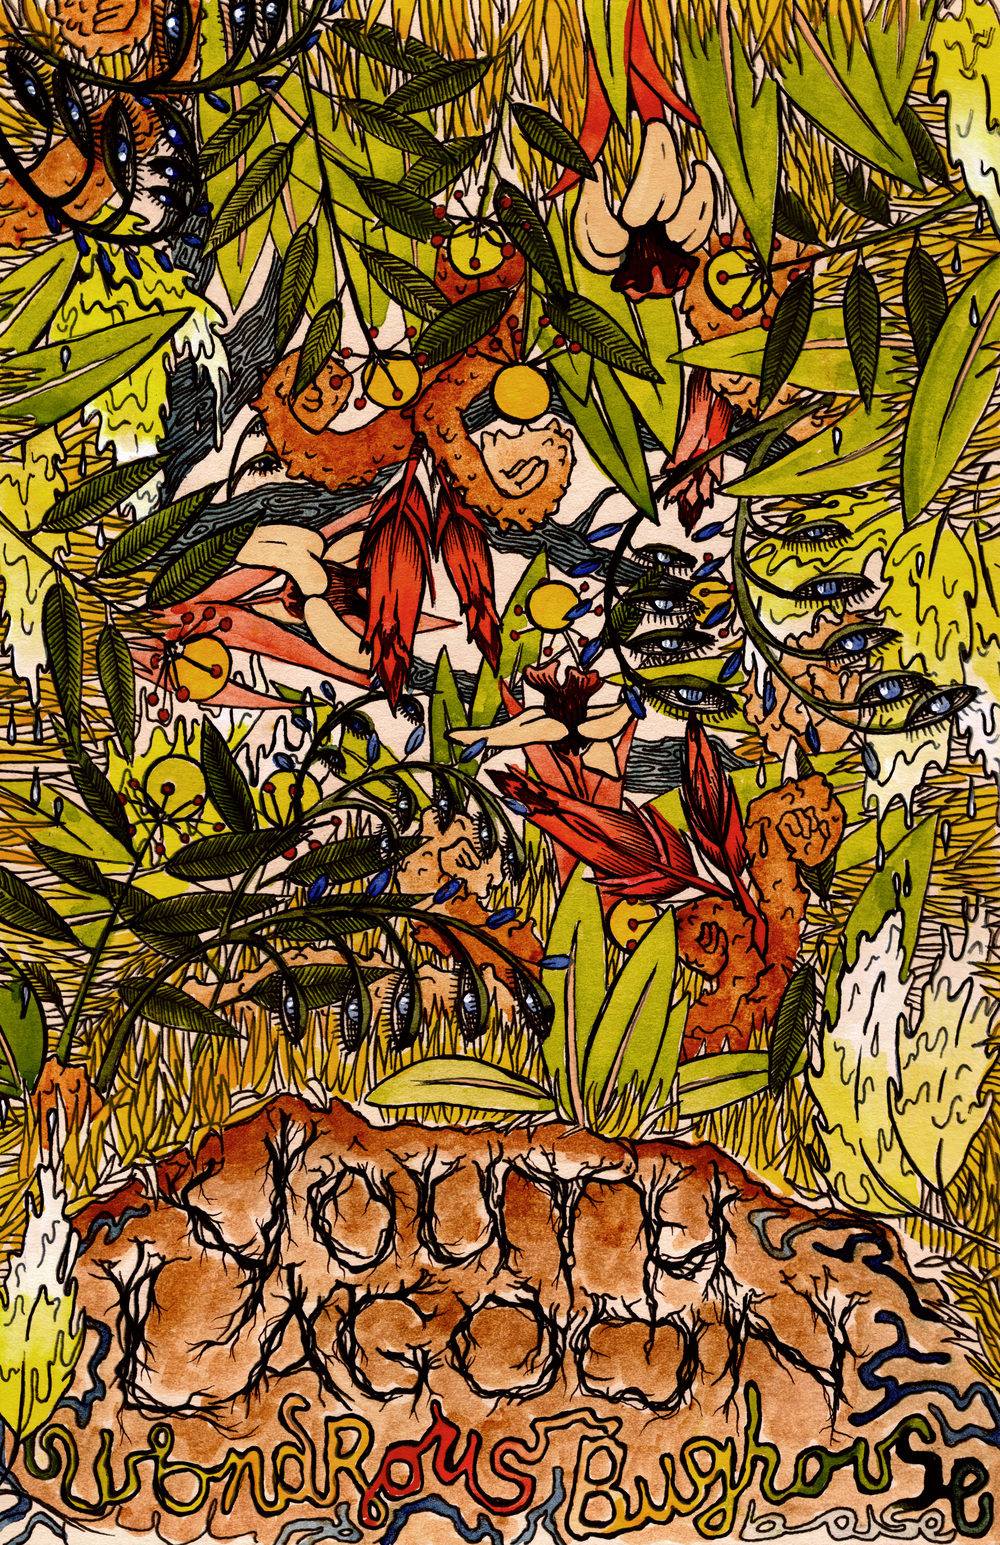 Youth Lagoon, Wondrous Bughouse